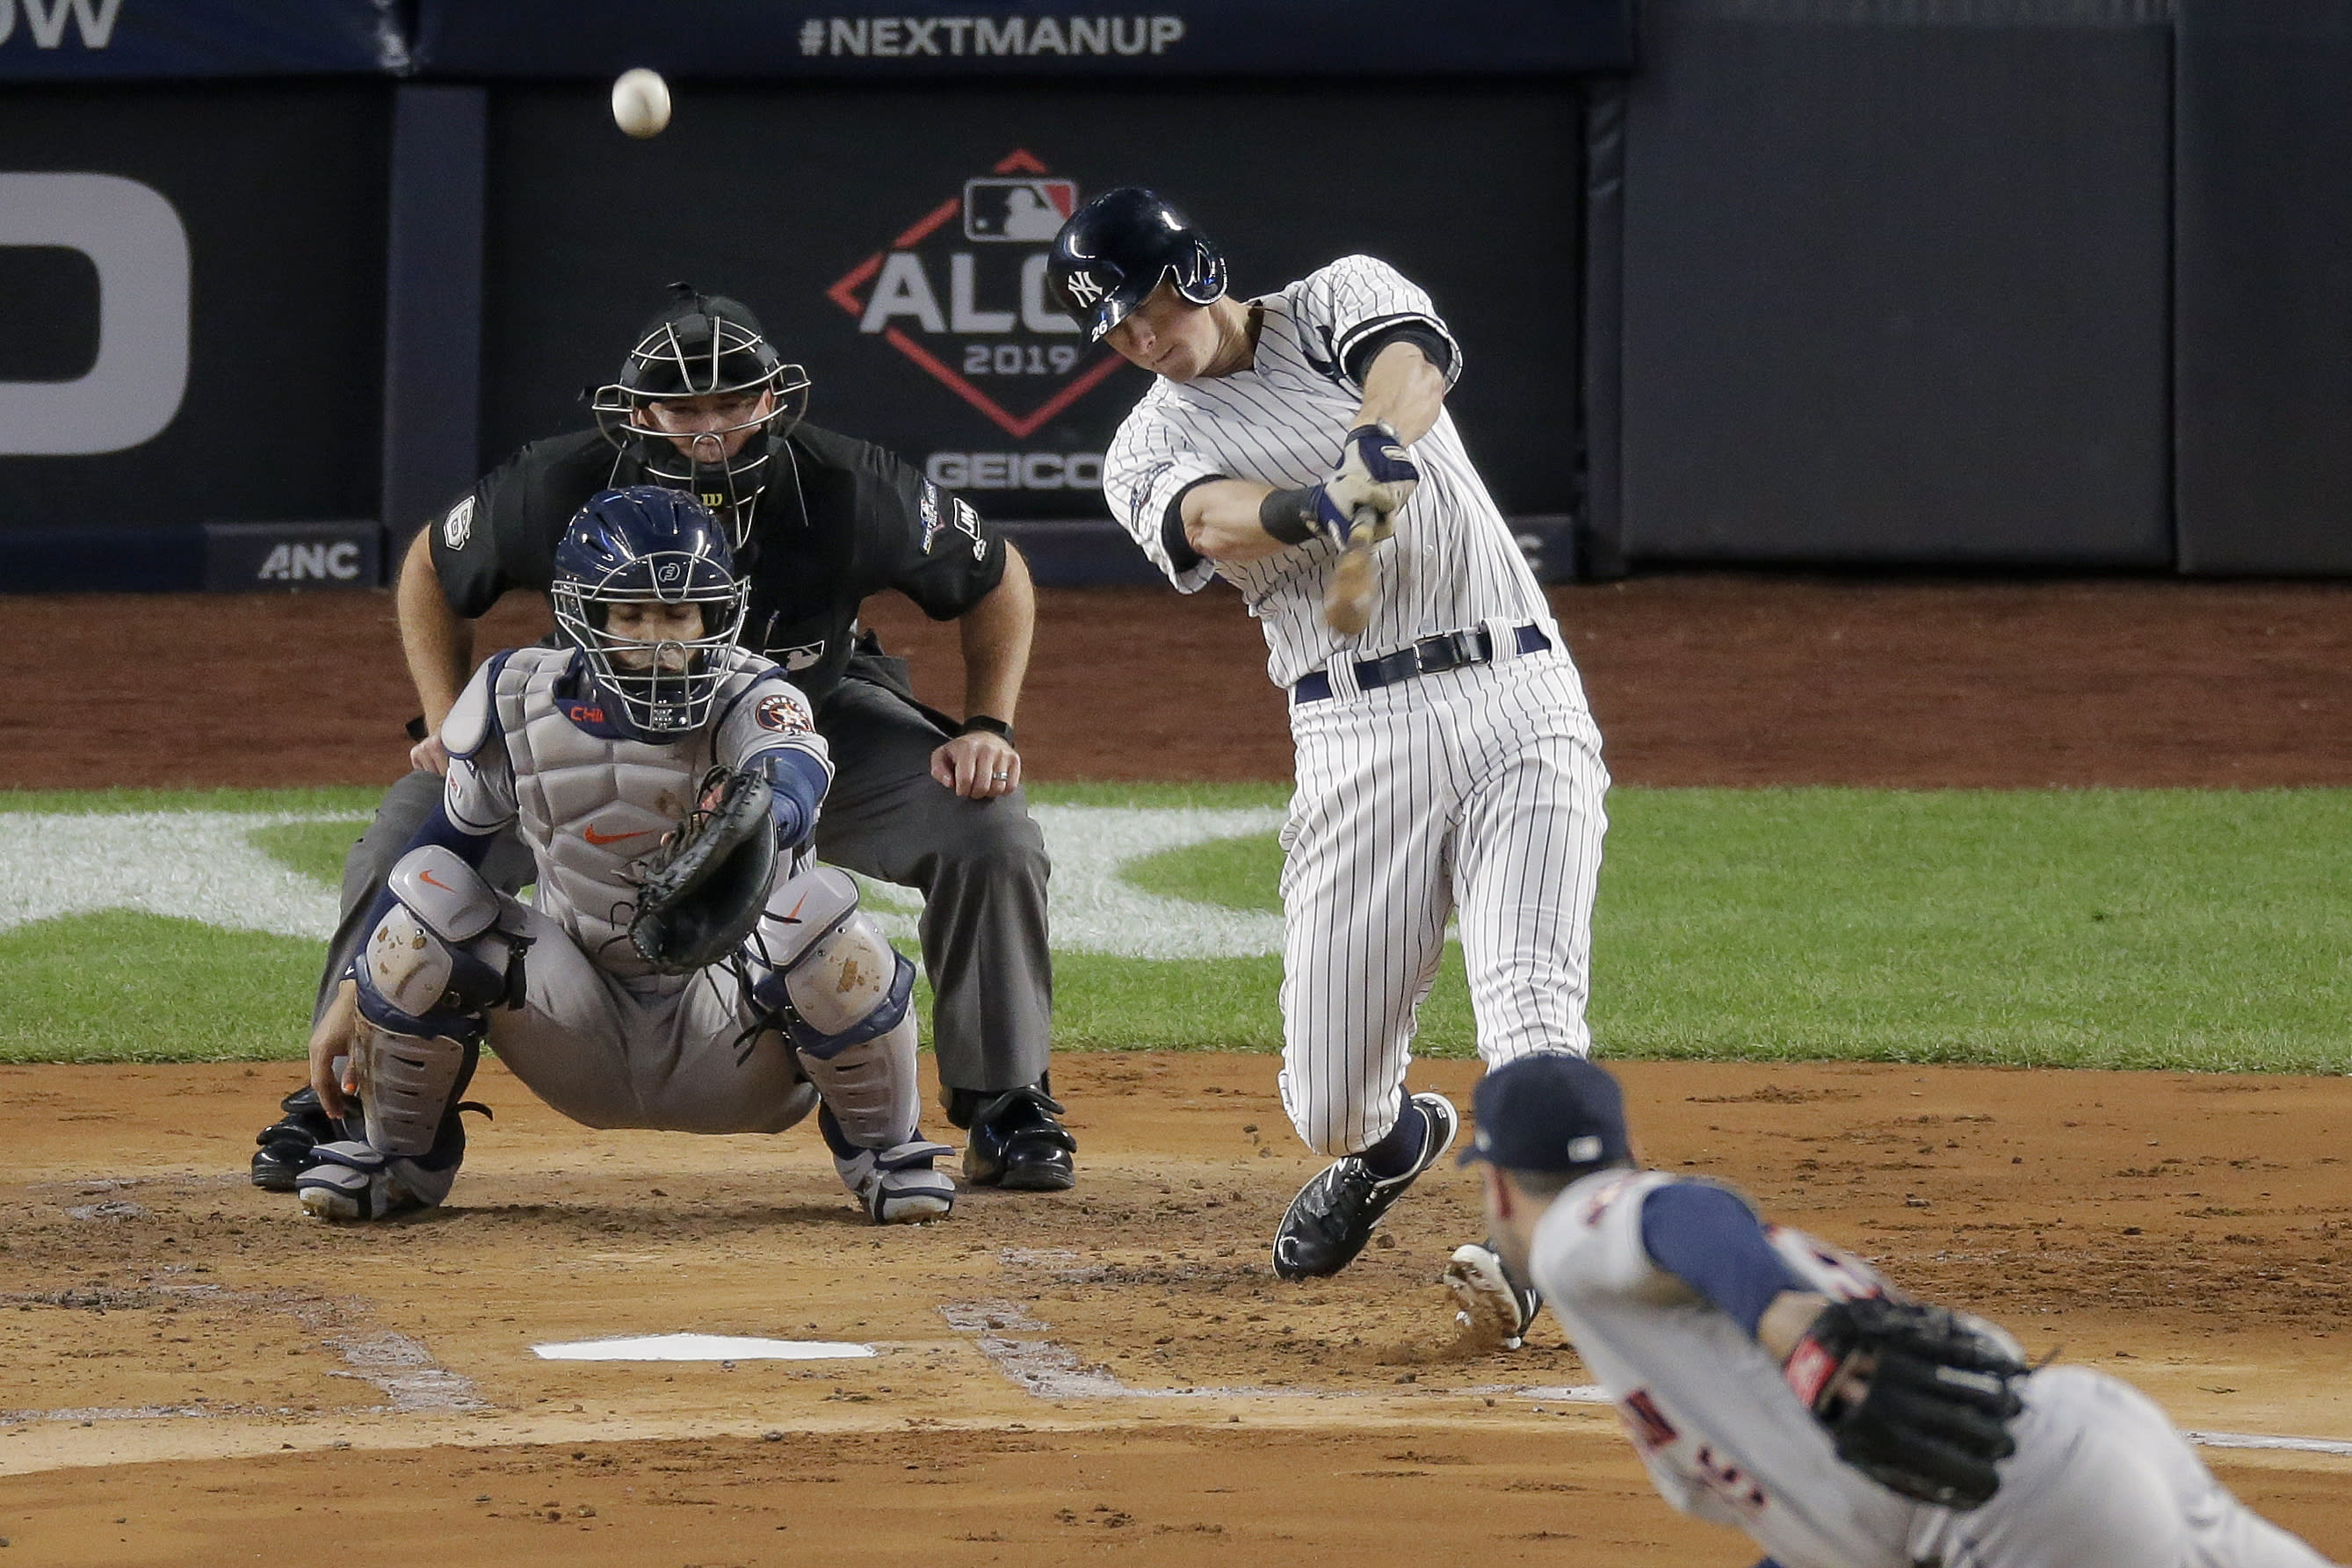 FILE - In this Oct. 18, 2019, file photo, New York Yankees' DJ LeMahieu, top right, connects for a solo home run against the Houston Astros during the first inning of Game 5 of baseball's American League Championship Series in New York. LeMahieu returned to the field for the Yankees on Friday, July 17, 2020, after missing nearly two weeks with COVID-19. Manager Aaron Boone announced on July 4 that LeMahieu and right-hander Luis Cessa tested positive for the coronavirus before traveling to New York and said they were self-isolating at home. (AP Photo/Seth Wenig, File)